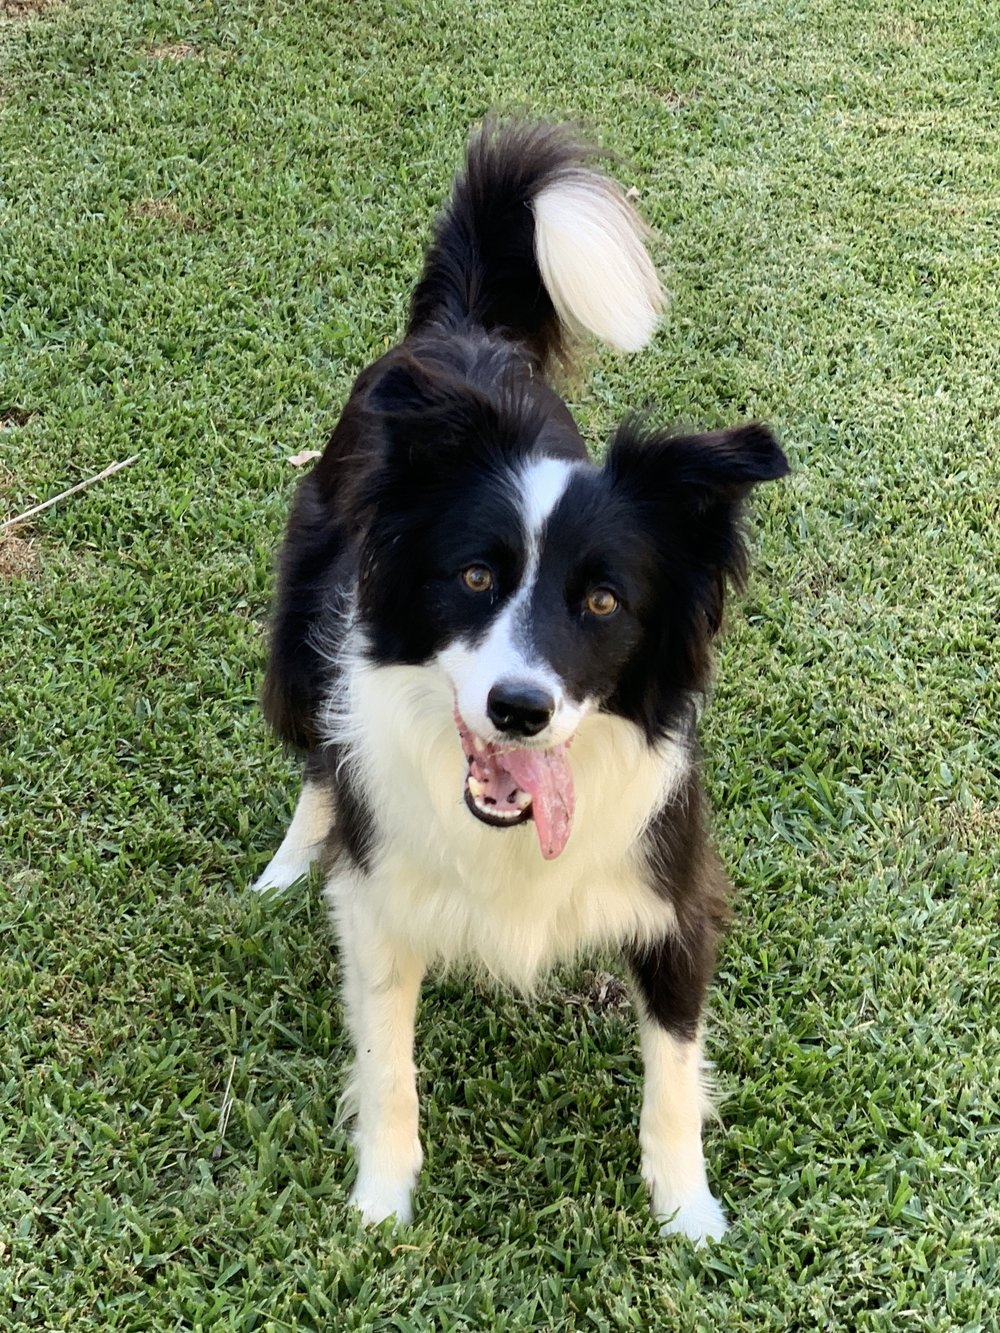 Tess is a 3 year old Border Collie who could possibly be the fastest dog that has ever stayed. She runs down balls at amazing speed, see her on the Videos page.